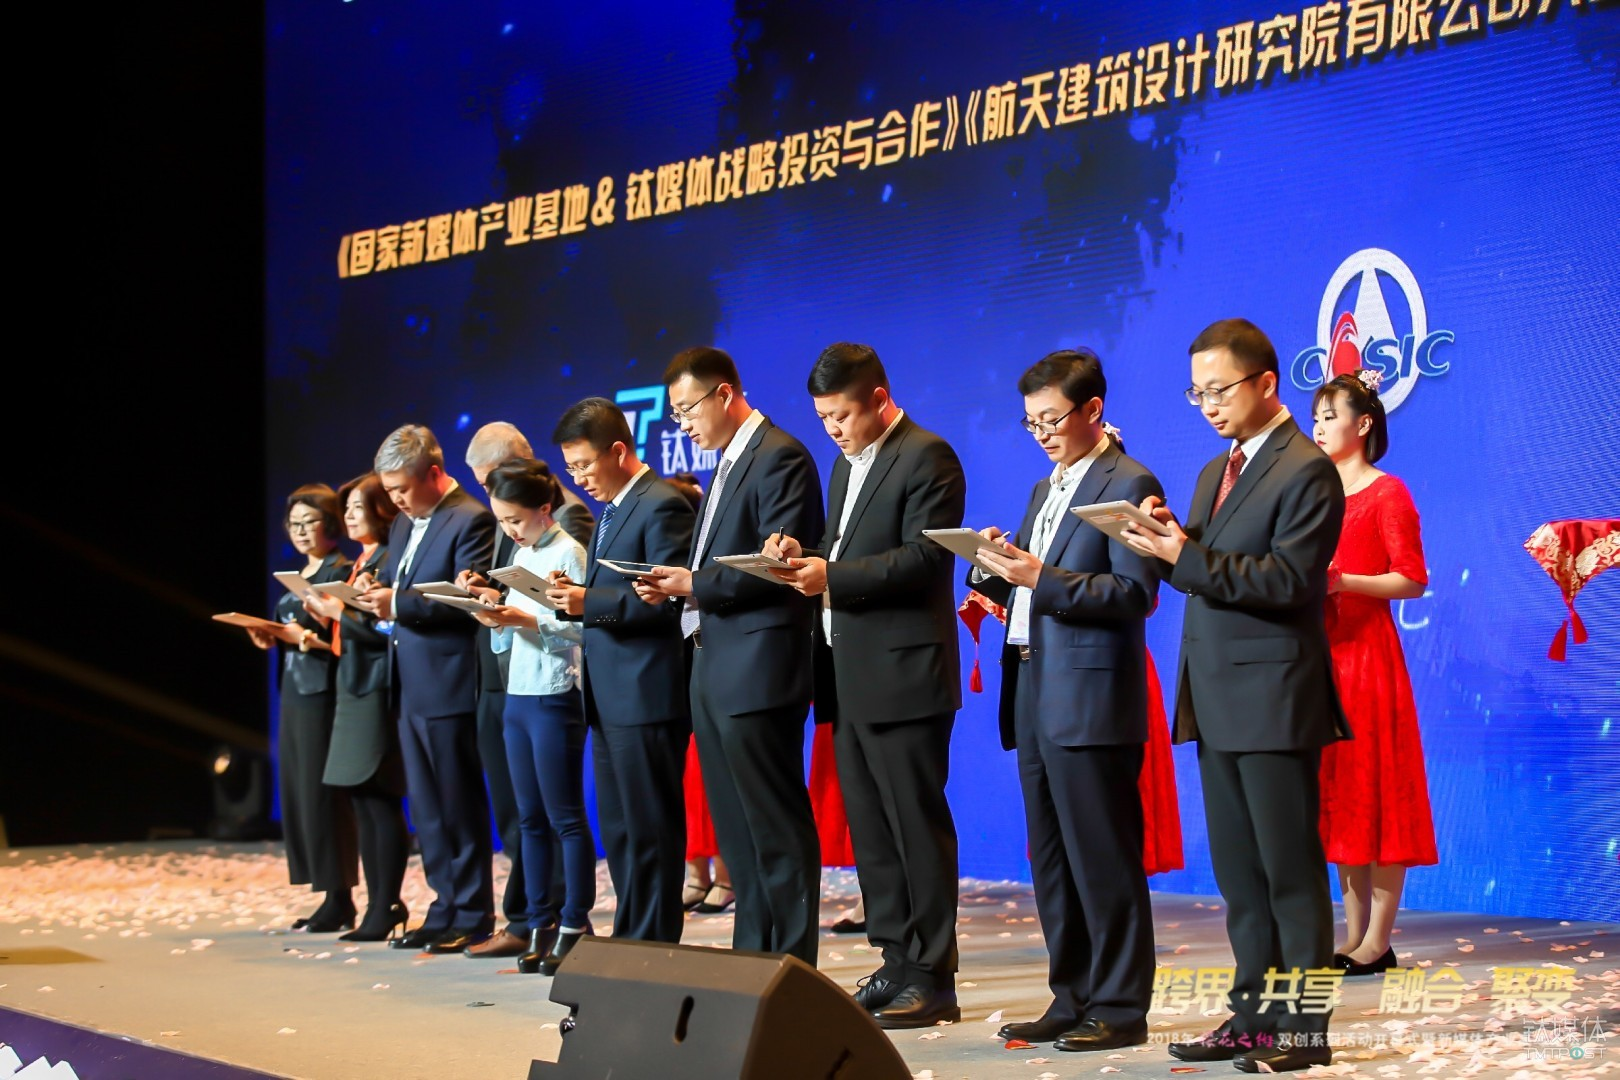 National new media base signed strategic investment and cooperation agreement with titanium media group